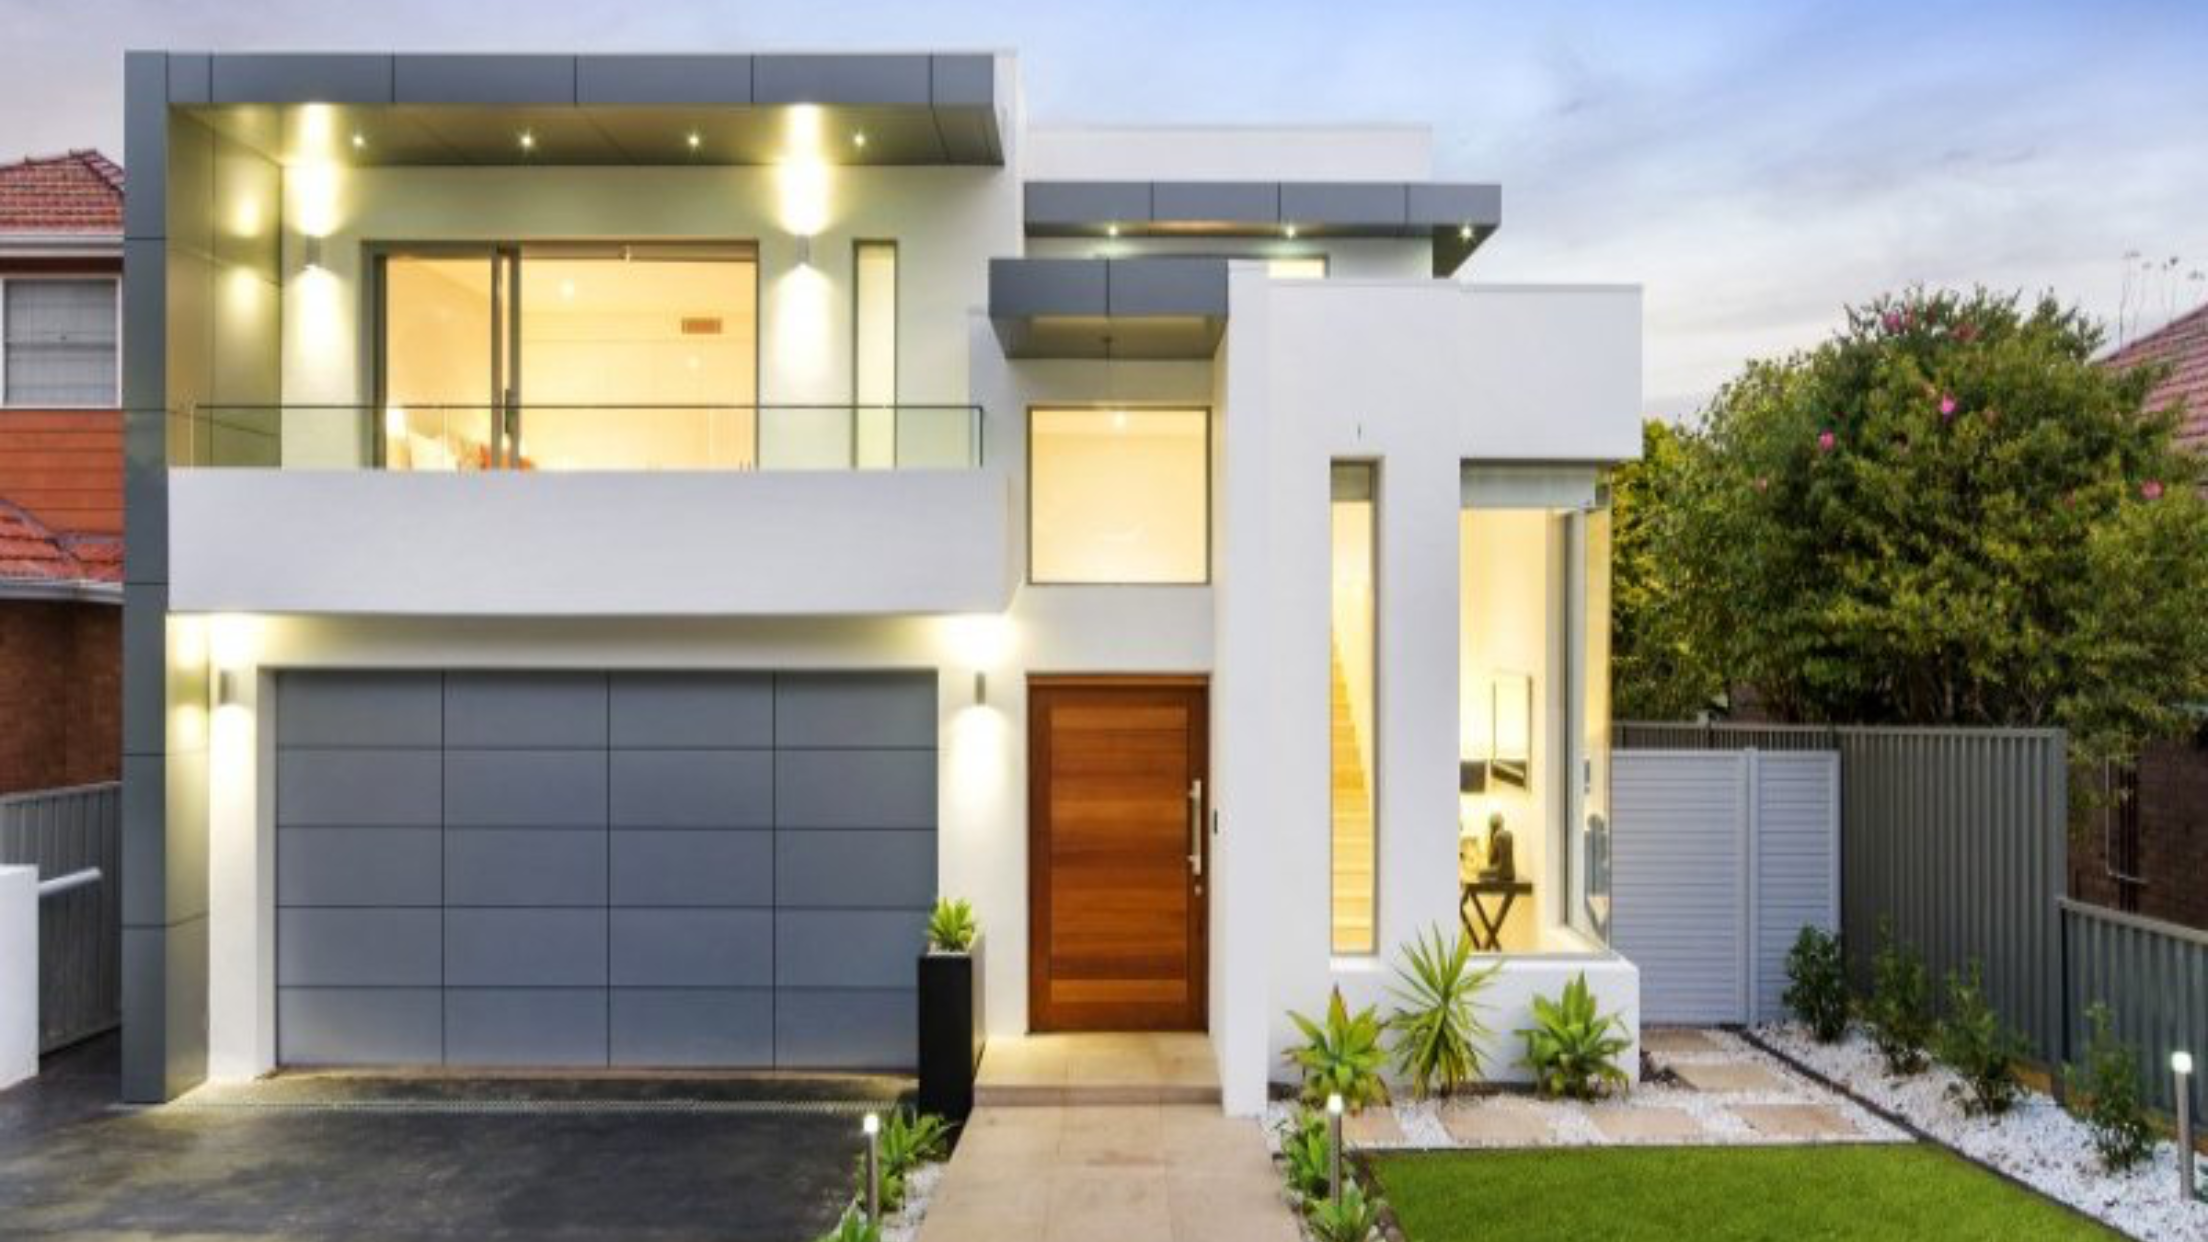 House · House Front DesignHouses SoldNews ...